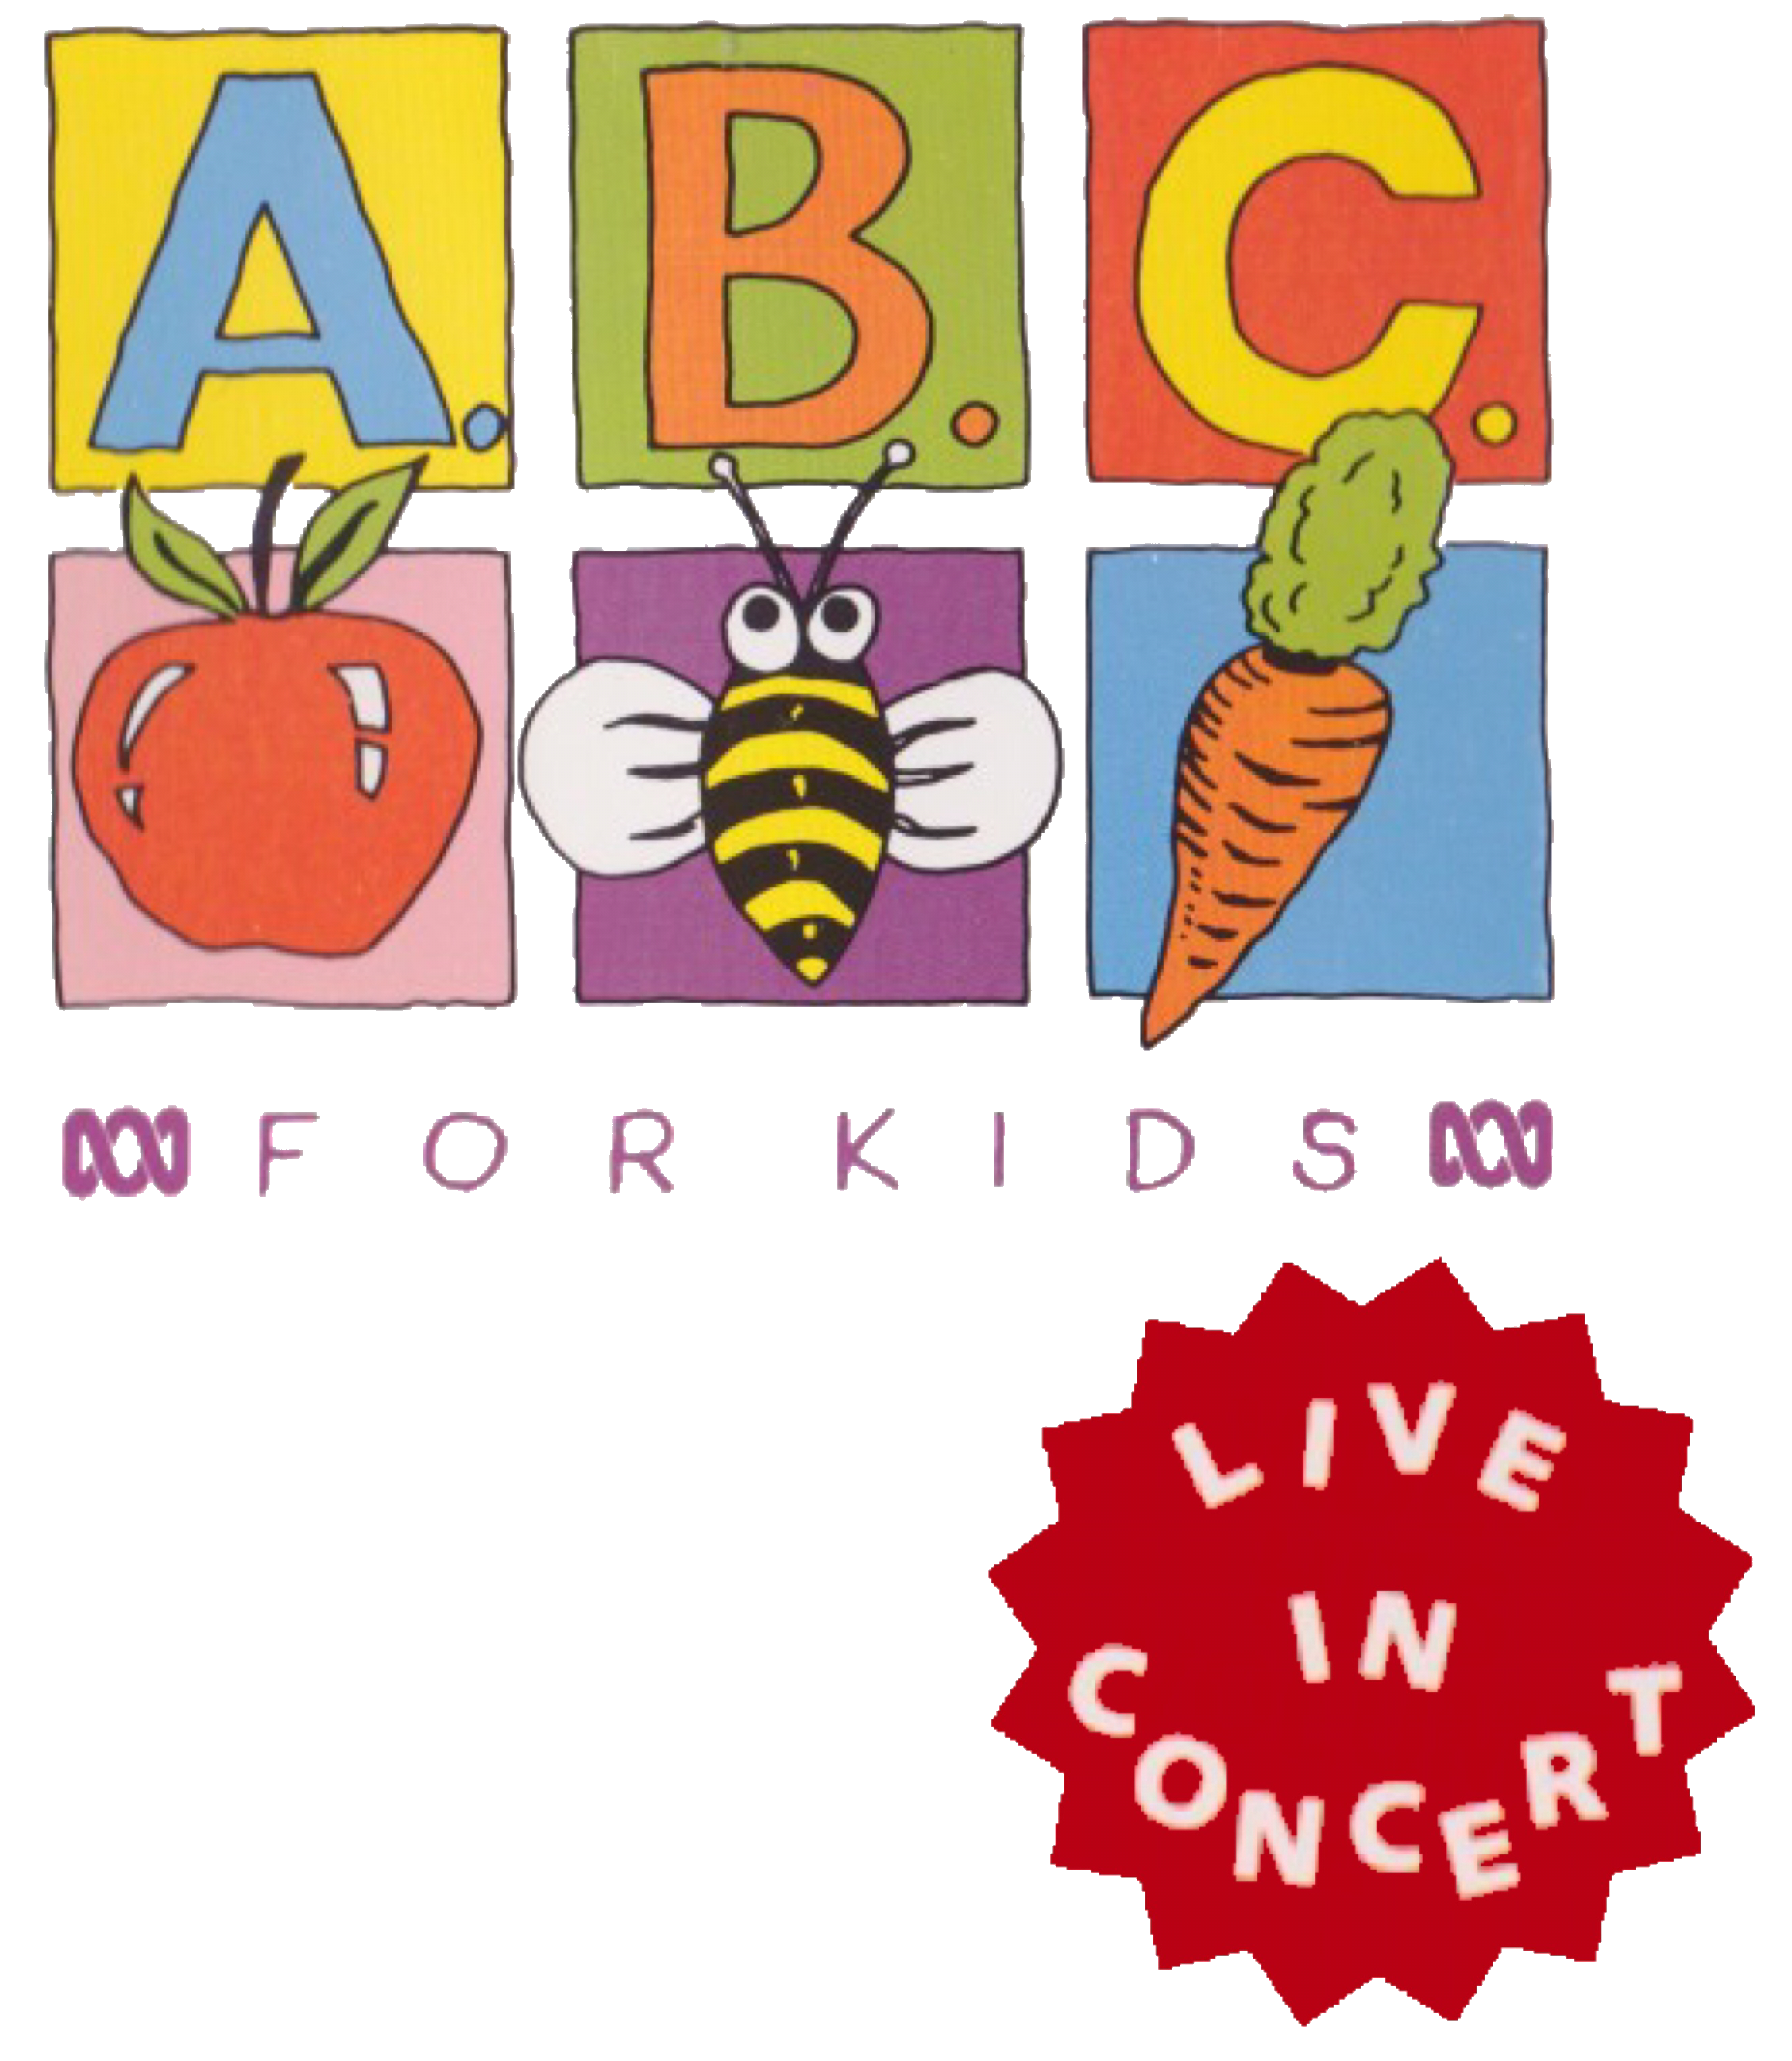 ABC for Kids Live in Concert